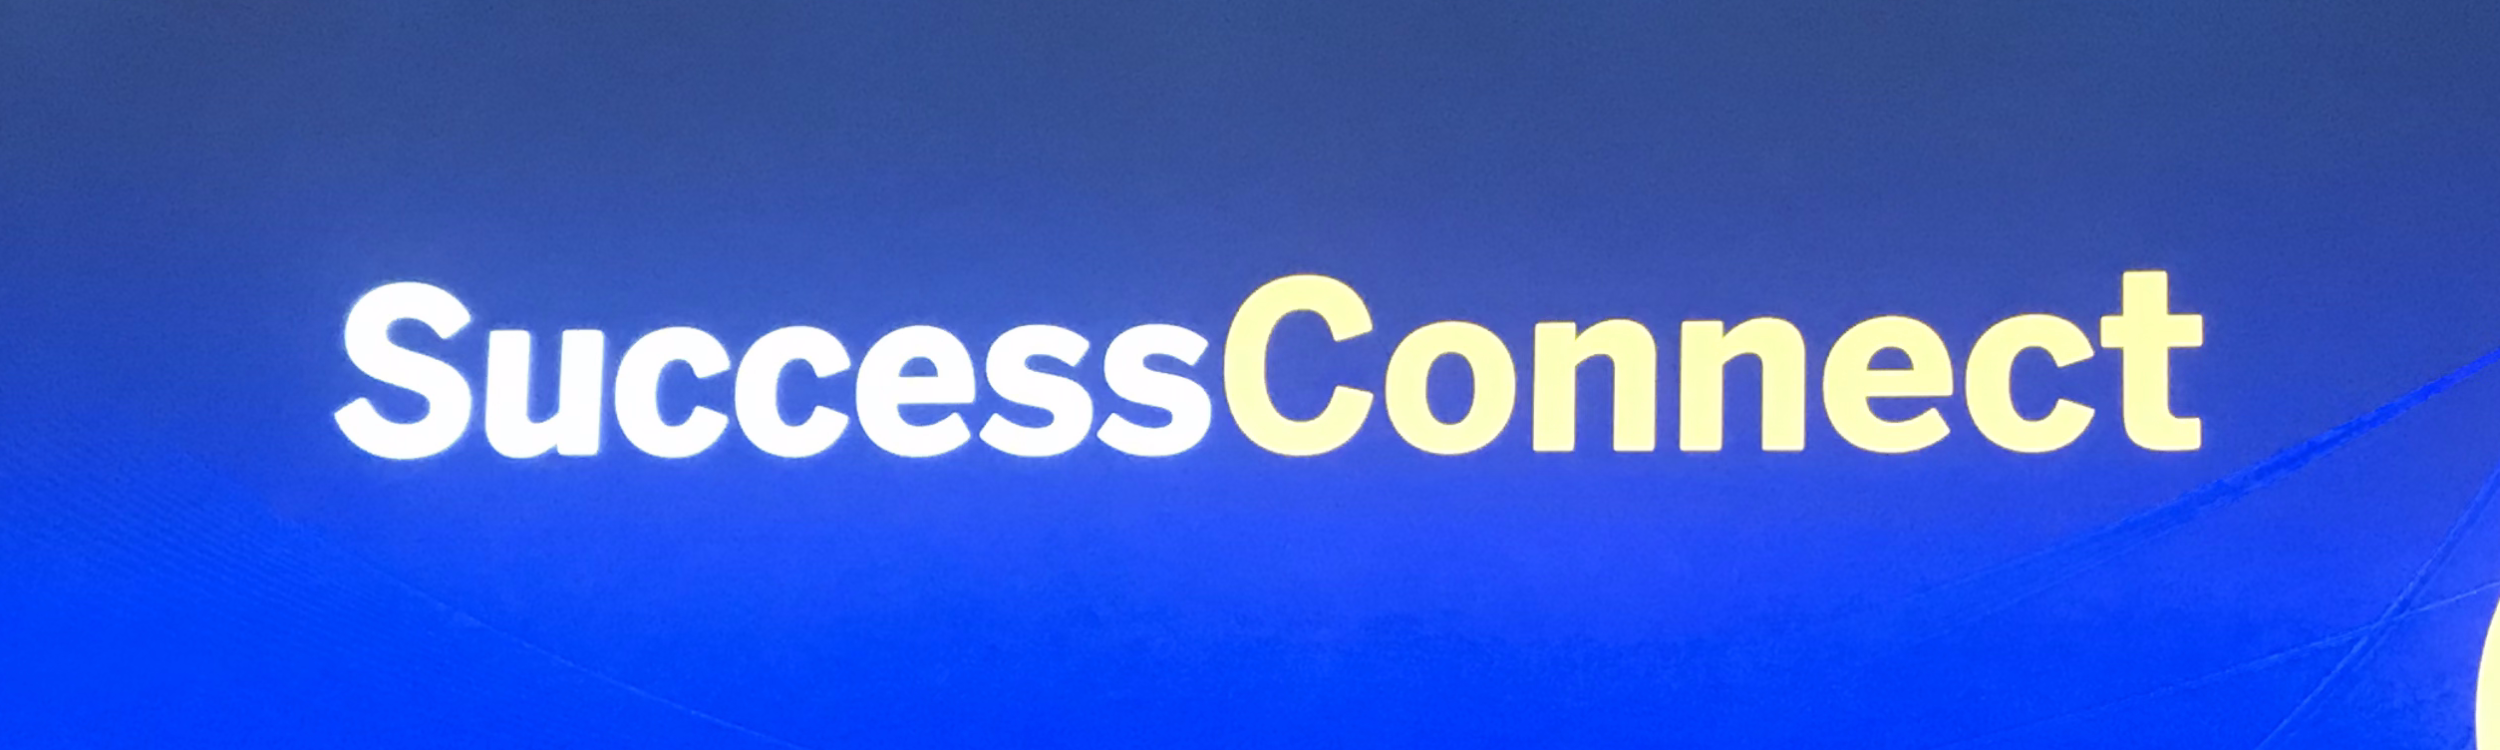 SuccessConnect 2020: 4 Big Takeaways on HXM, SAP Work Zone for HR, and More featured image